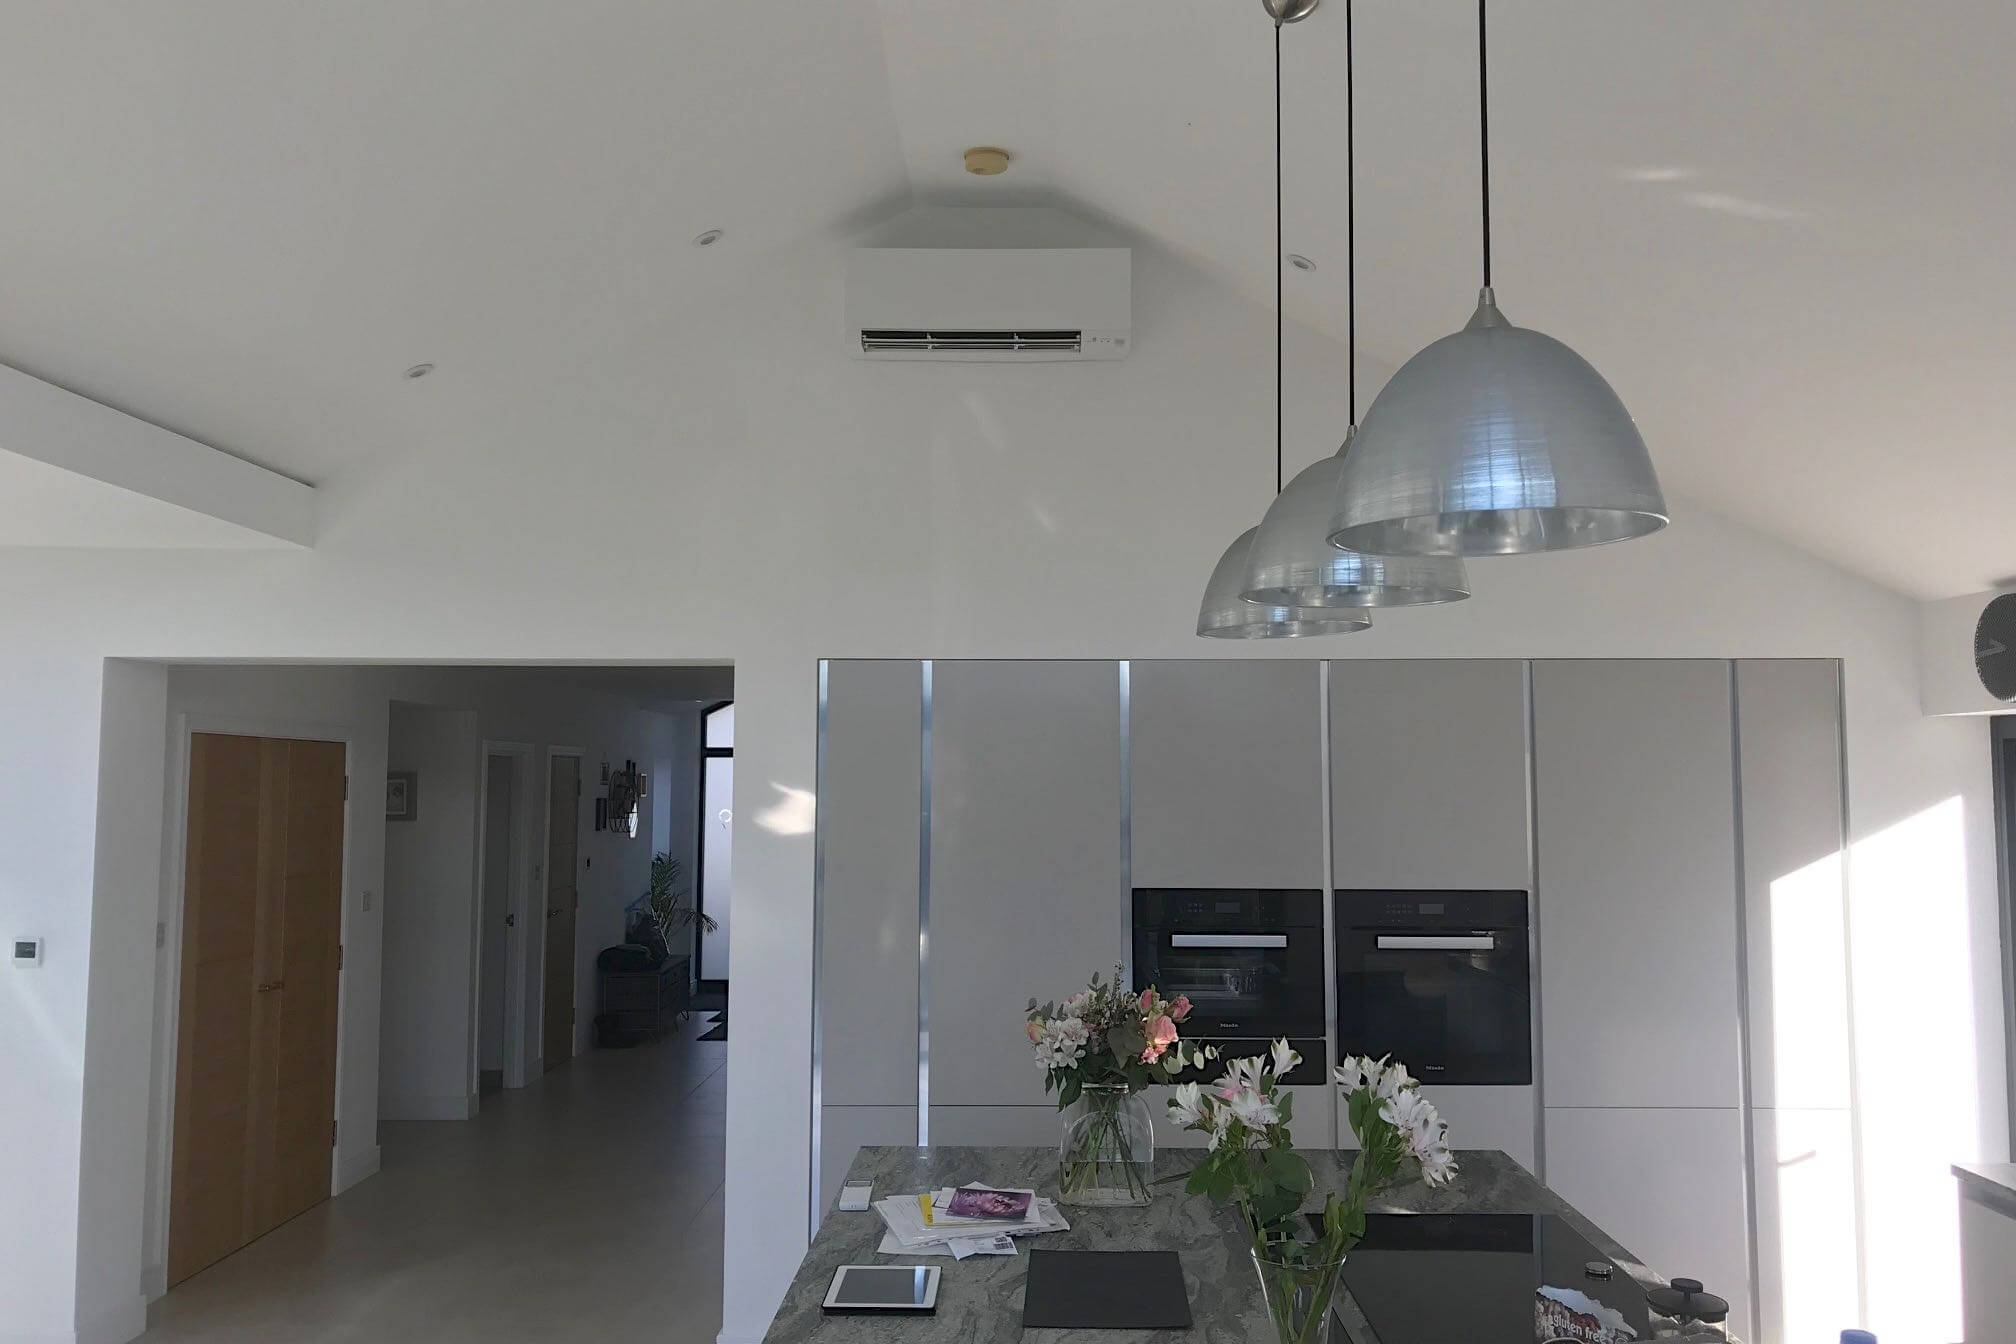 White wall mounted domestic air conditioning unit in open plan kitchen over fridge an oven units